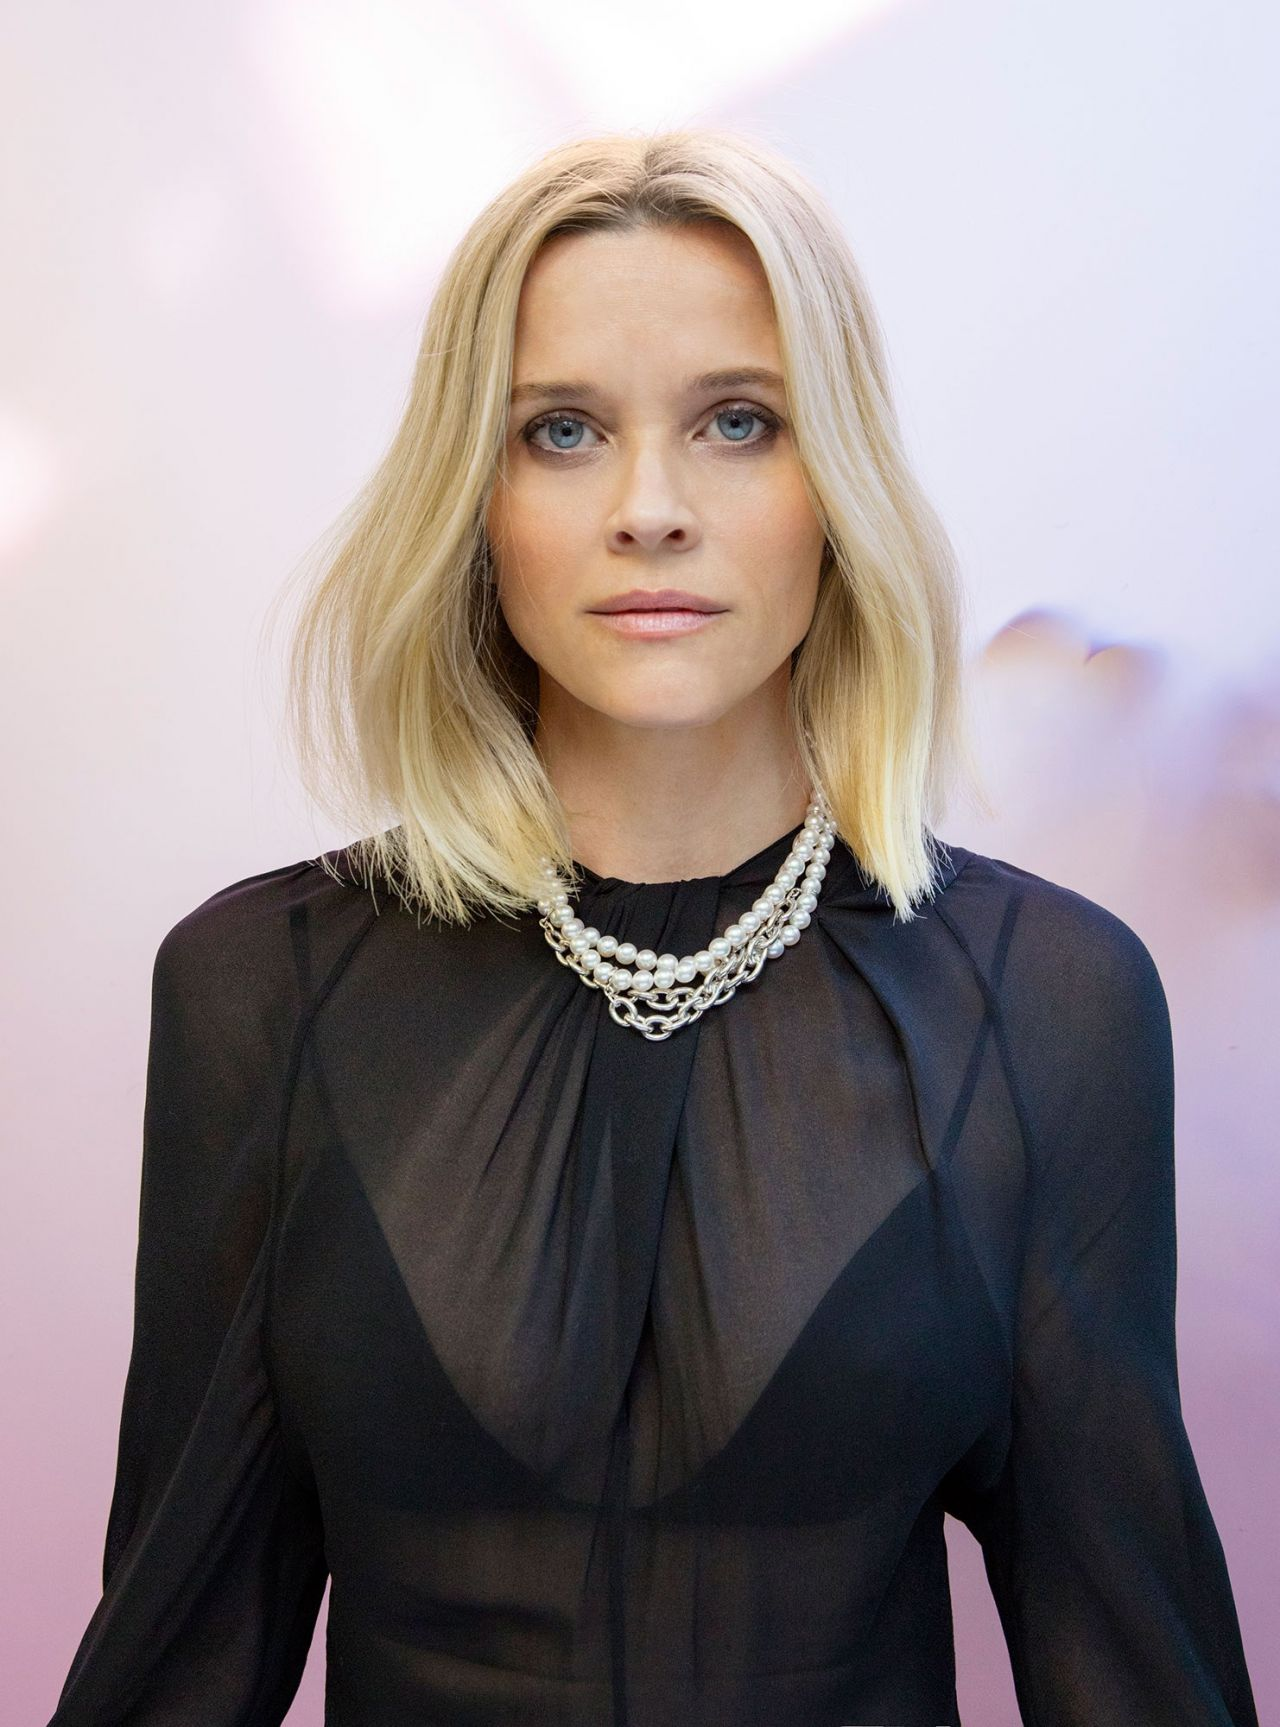 reese-witherspoon-covers-vanity-fair-magazine-april-2020-issue